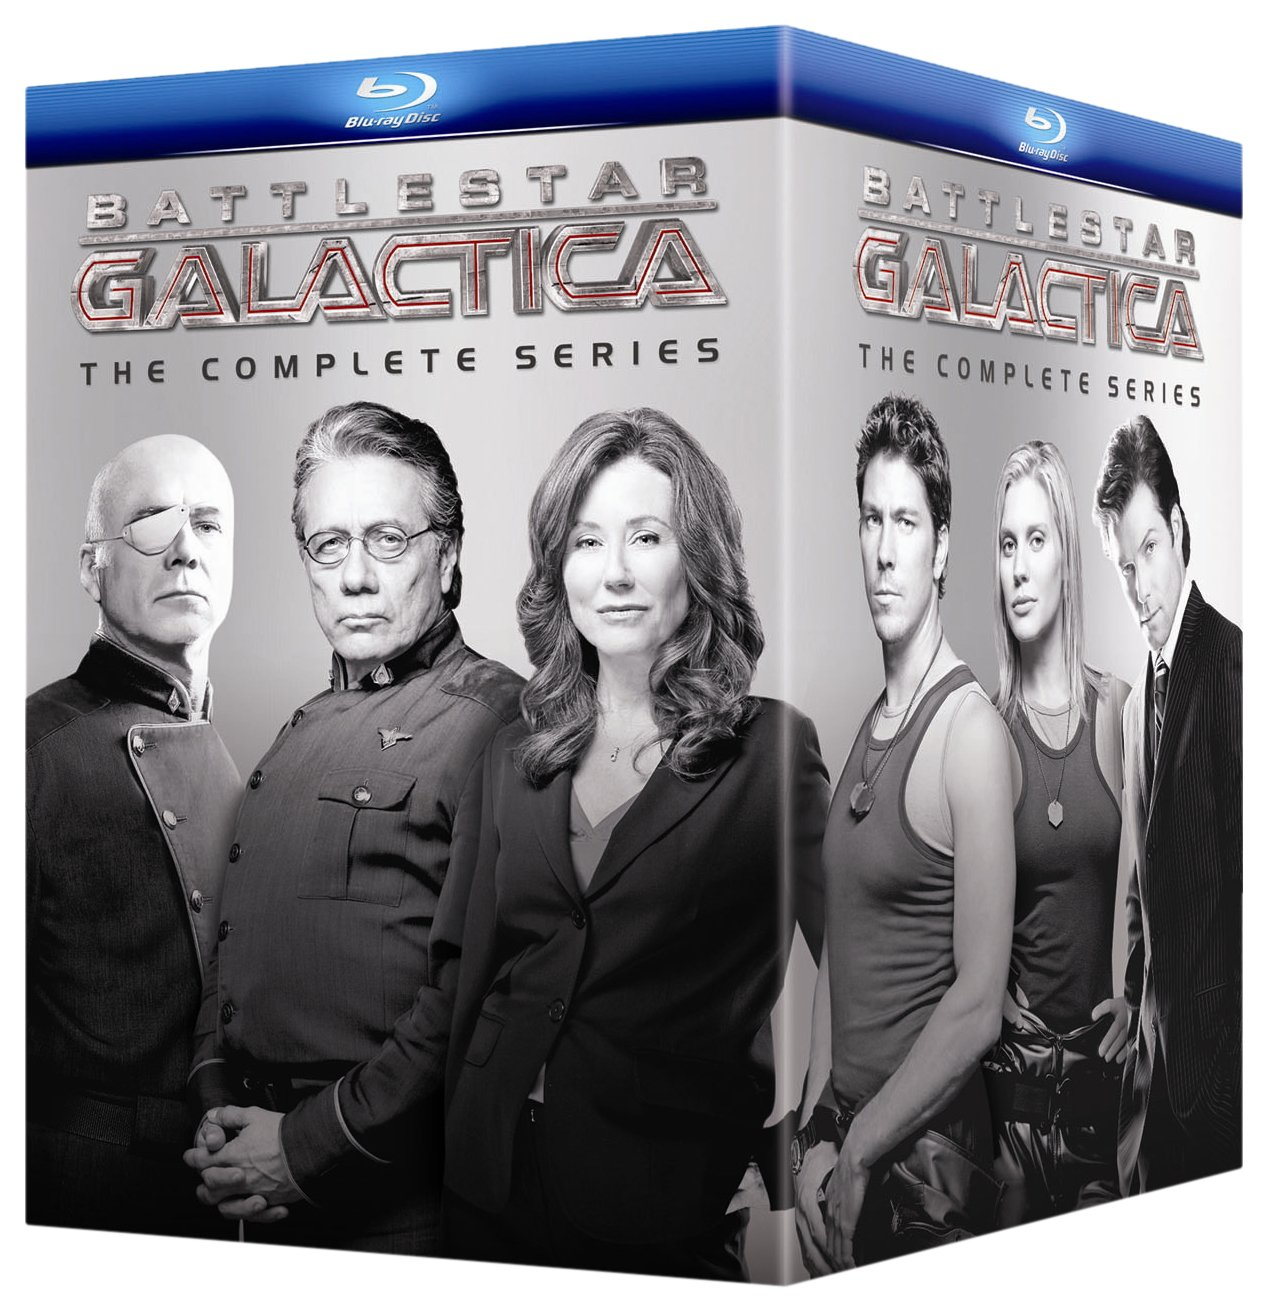 Battlestar Galactica: The Complete Series [Blu-ray] by Universal Studios UK